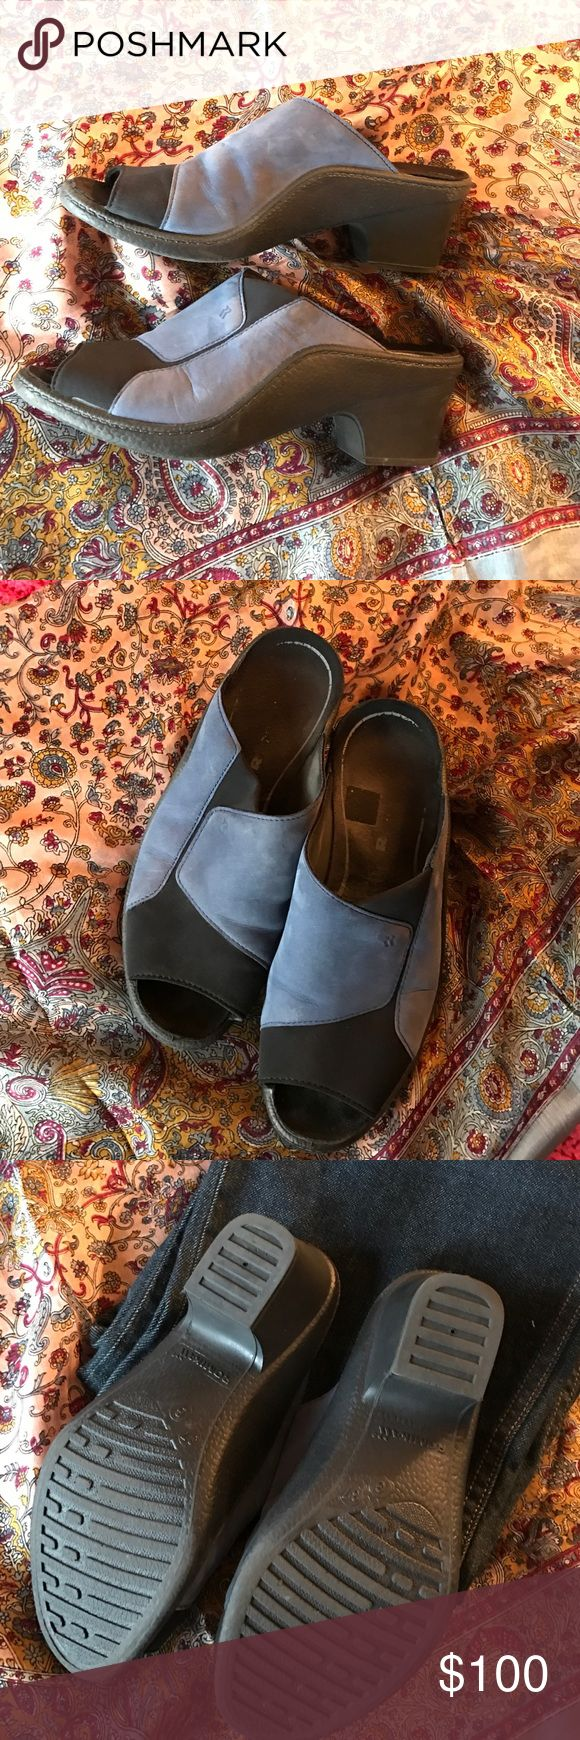 Blue suede shoes!! Black and blue suede slides.  Romulus (similar to Mephisto). Size 37 (US 7).  Very comfortable and supportive! Romika Shoes Mules & Clogs